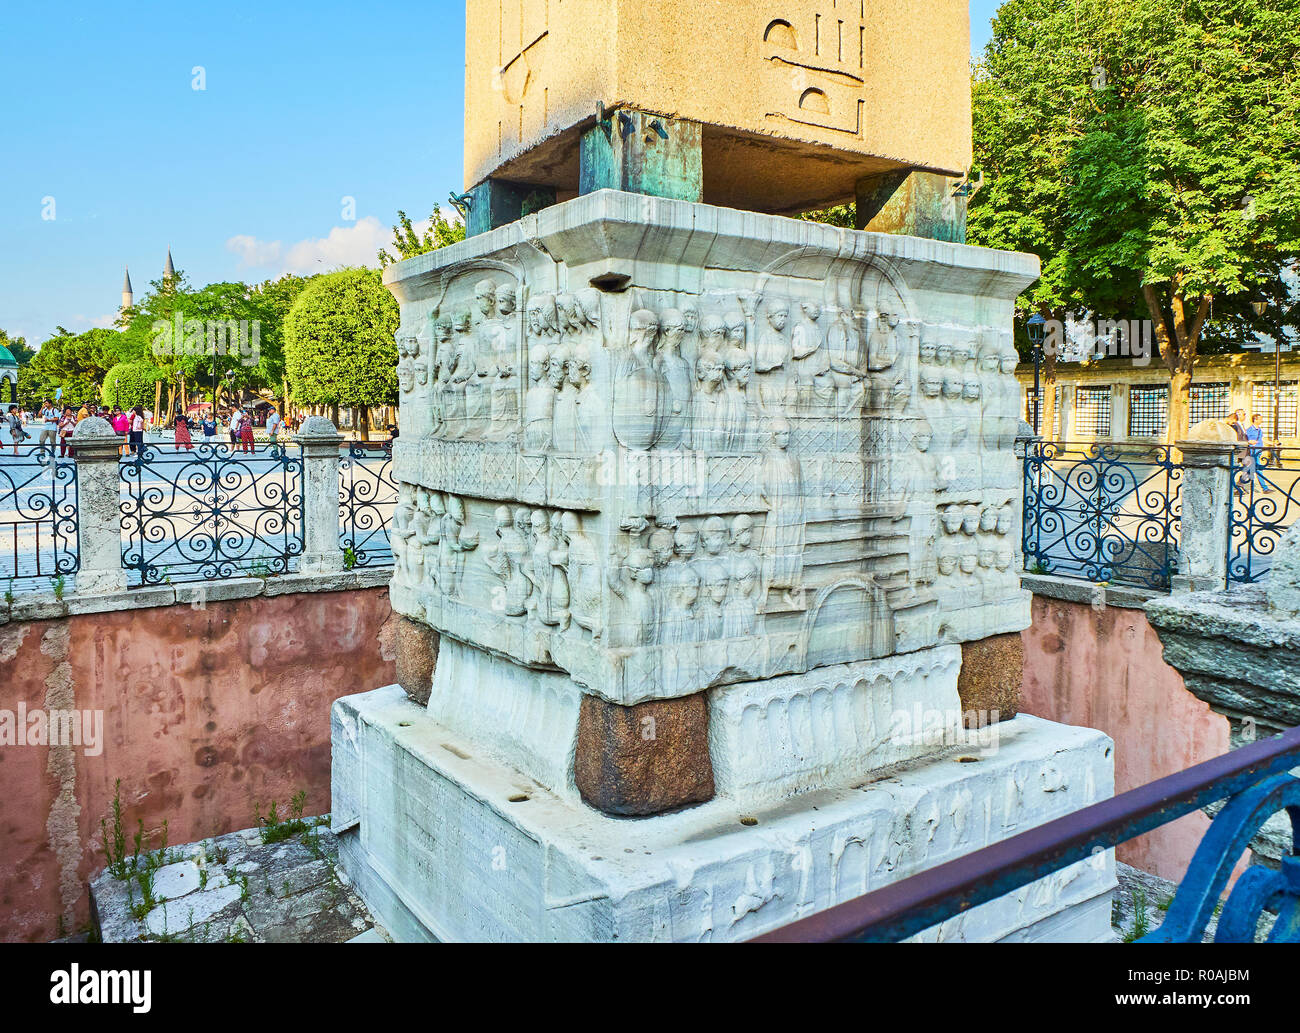 Detail of the pedestal of The Obelisk of Theodosius, an ancient Egyptian obelisk in the Hippodrome of Constantinople - Stock Image